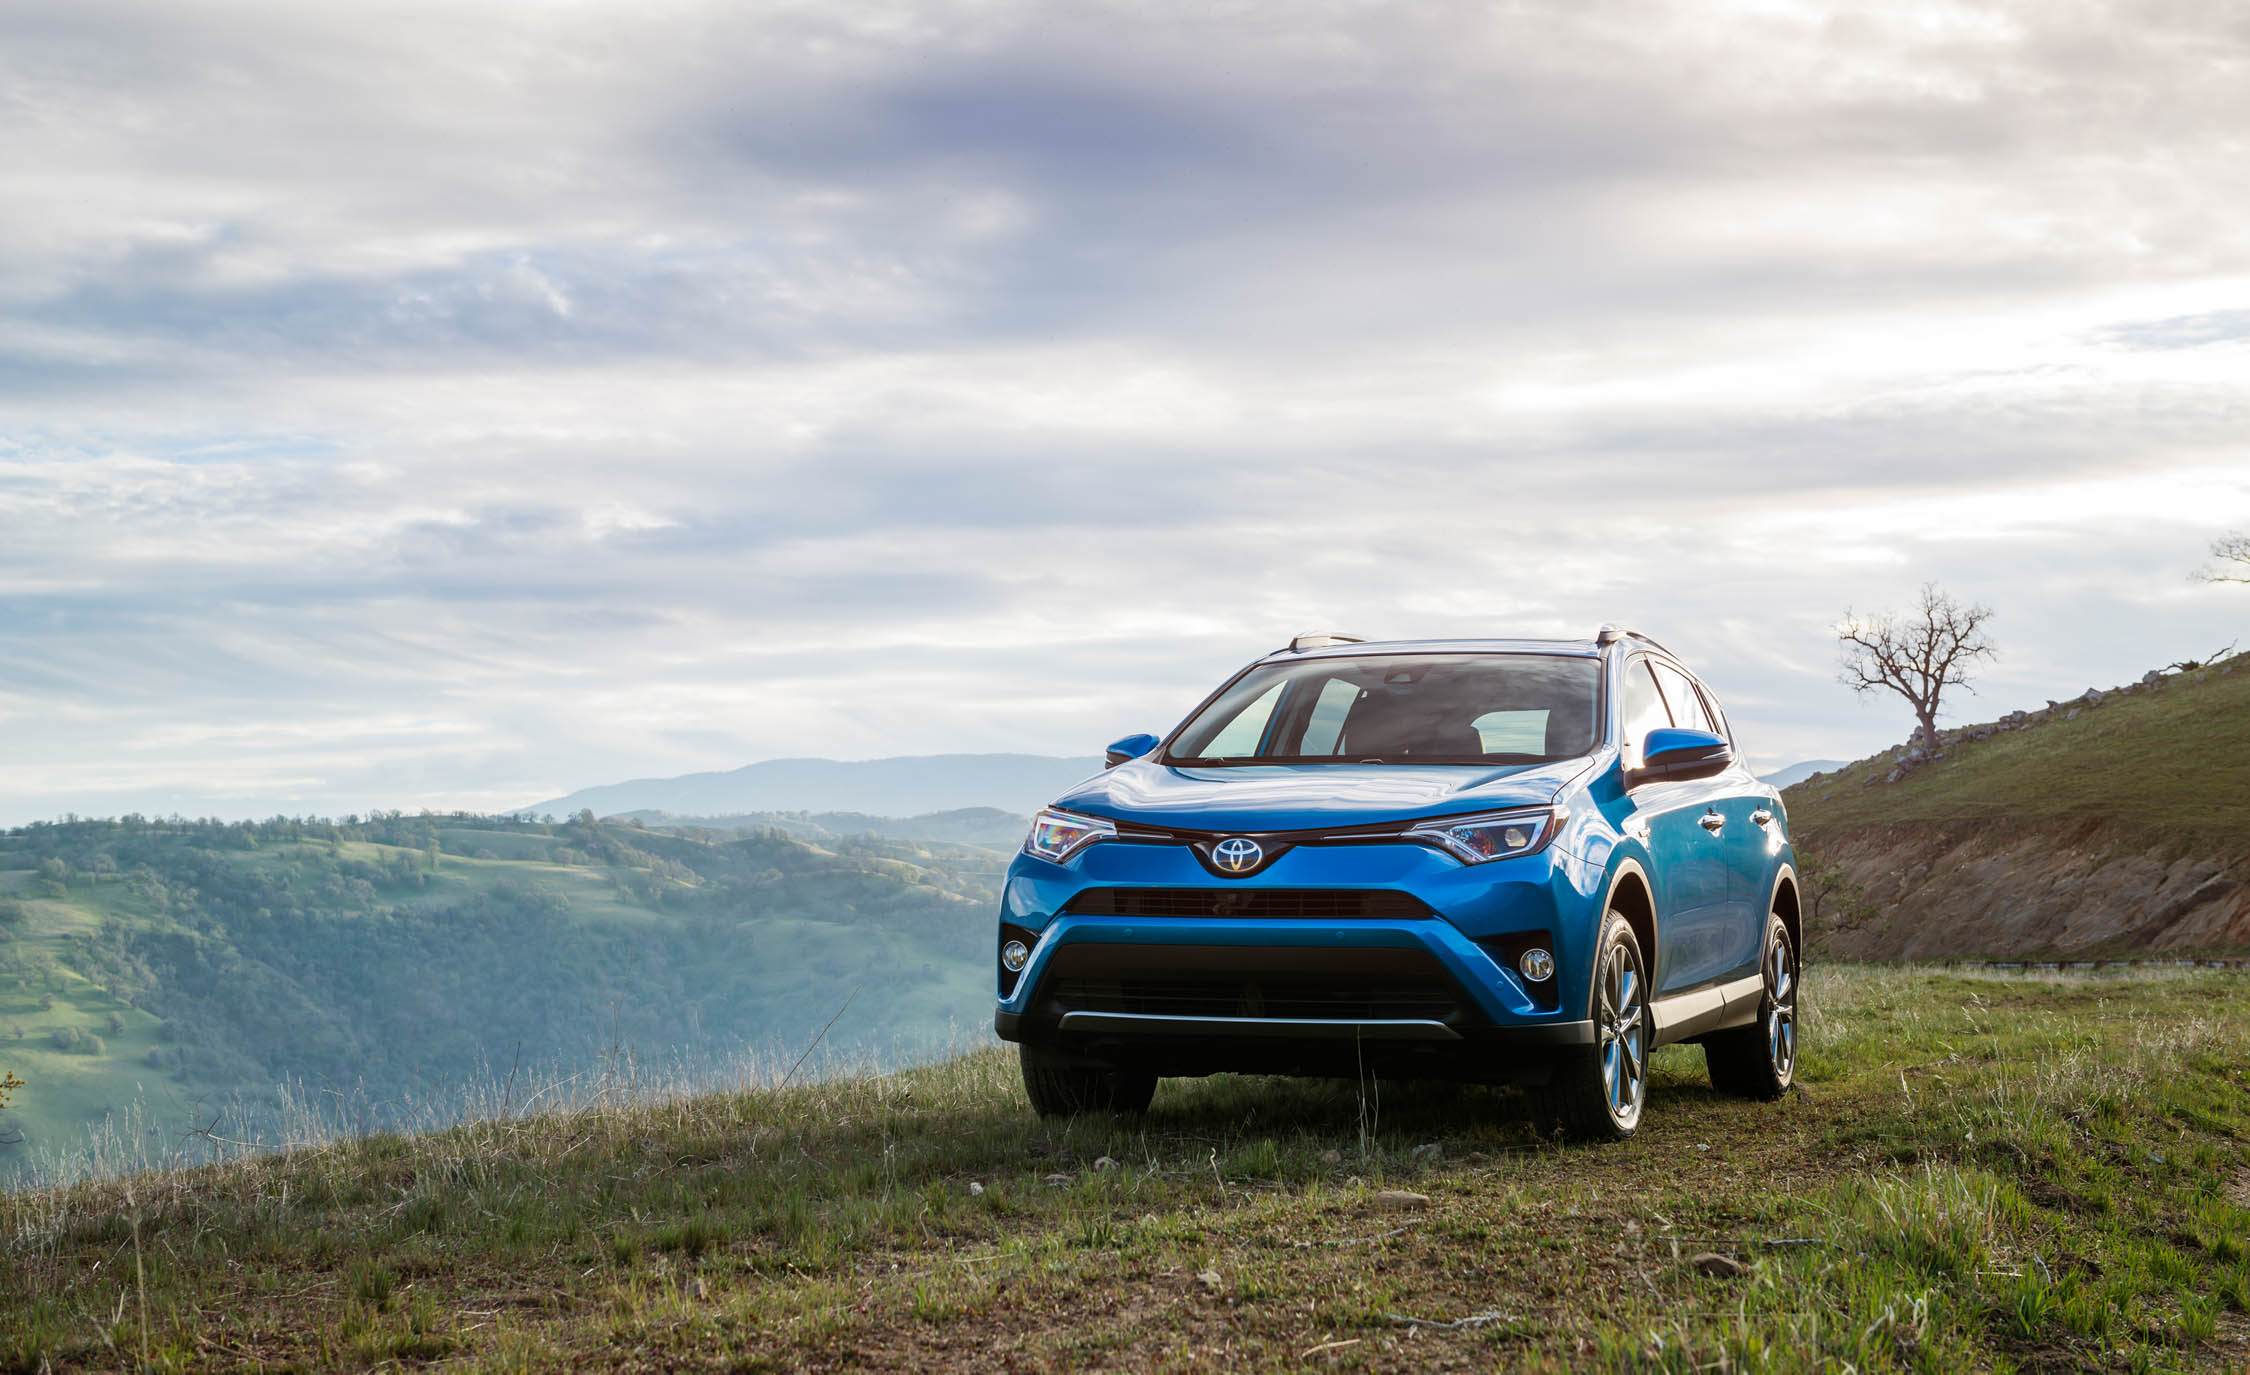 2016 Toyota Rav4 Hybrid Exterior Front (Photo 5 of 26)